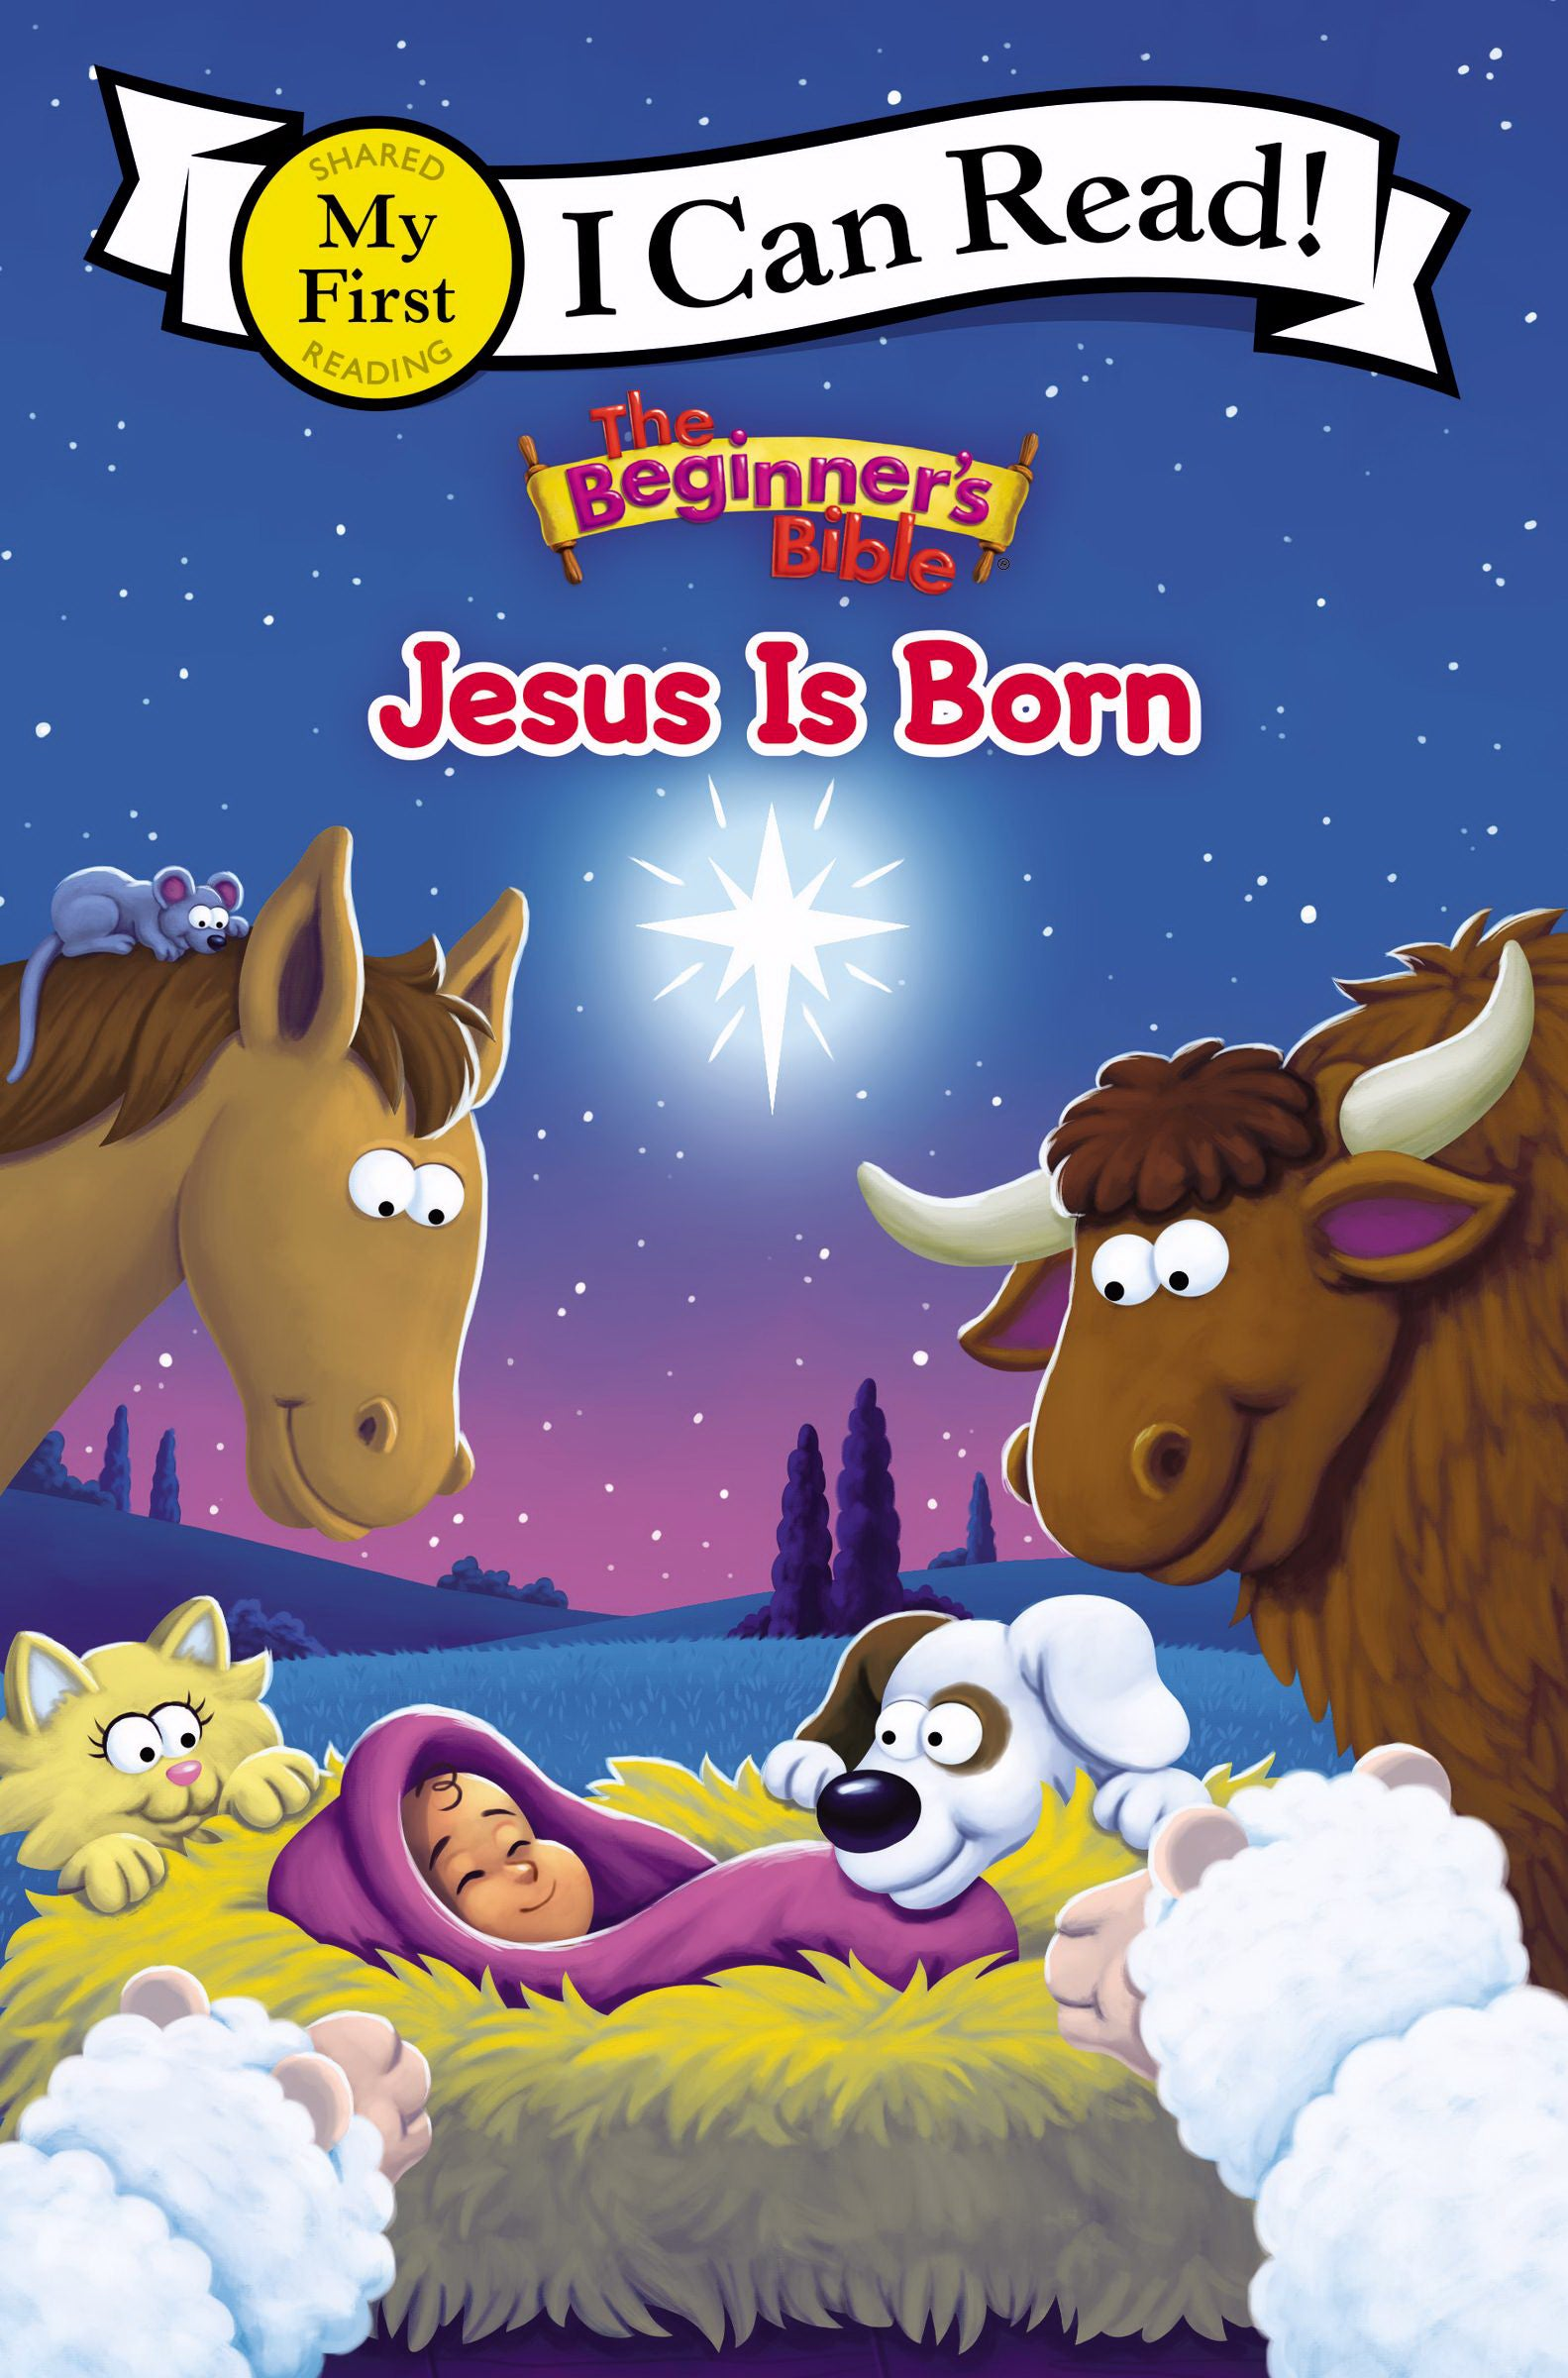 The Beginner's Bible: Jesus Is Born (I Can Read!)